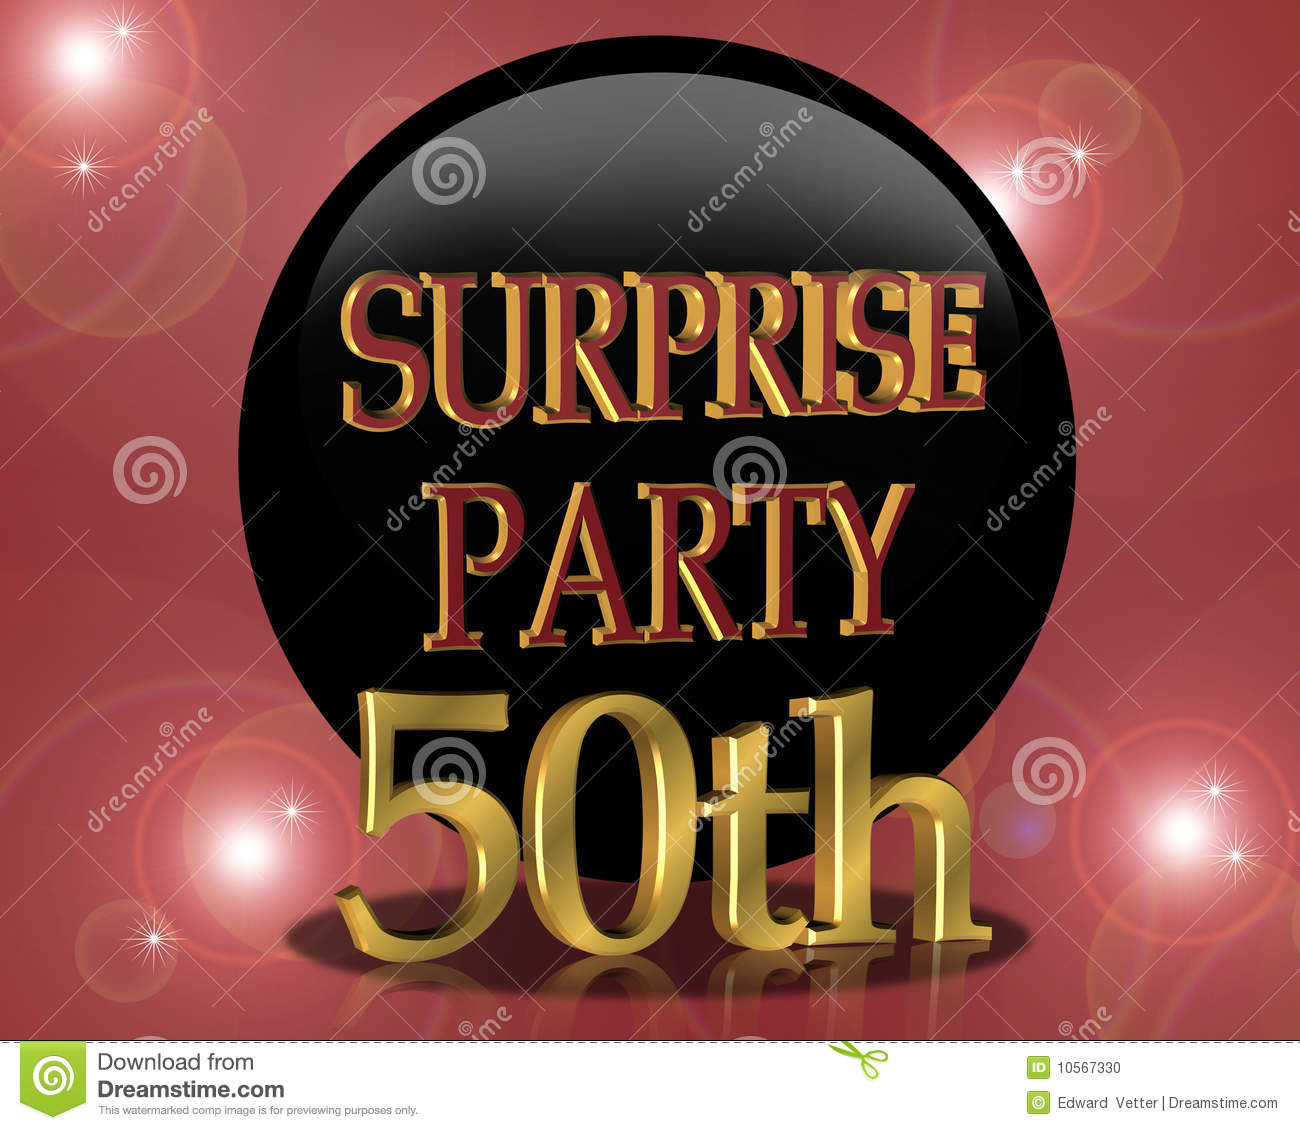 50th Birthday Surprise Party Invitation Stock Photo - Image: 10567330